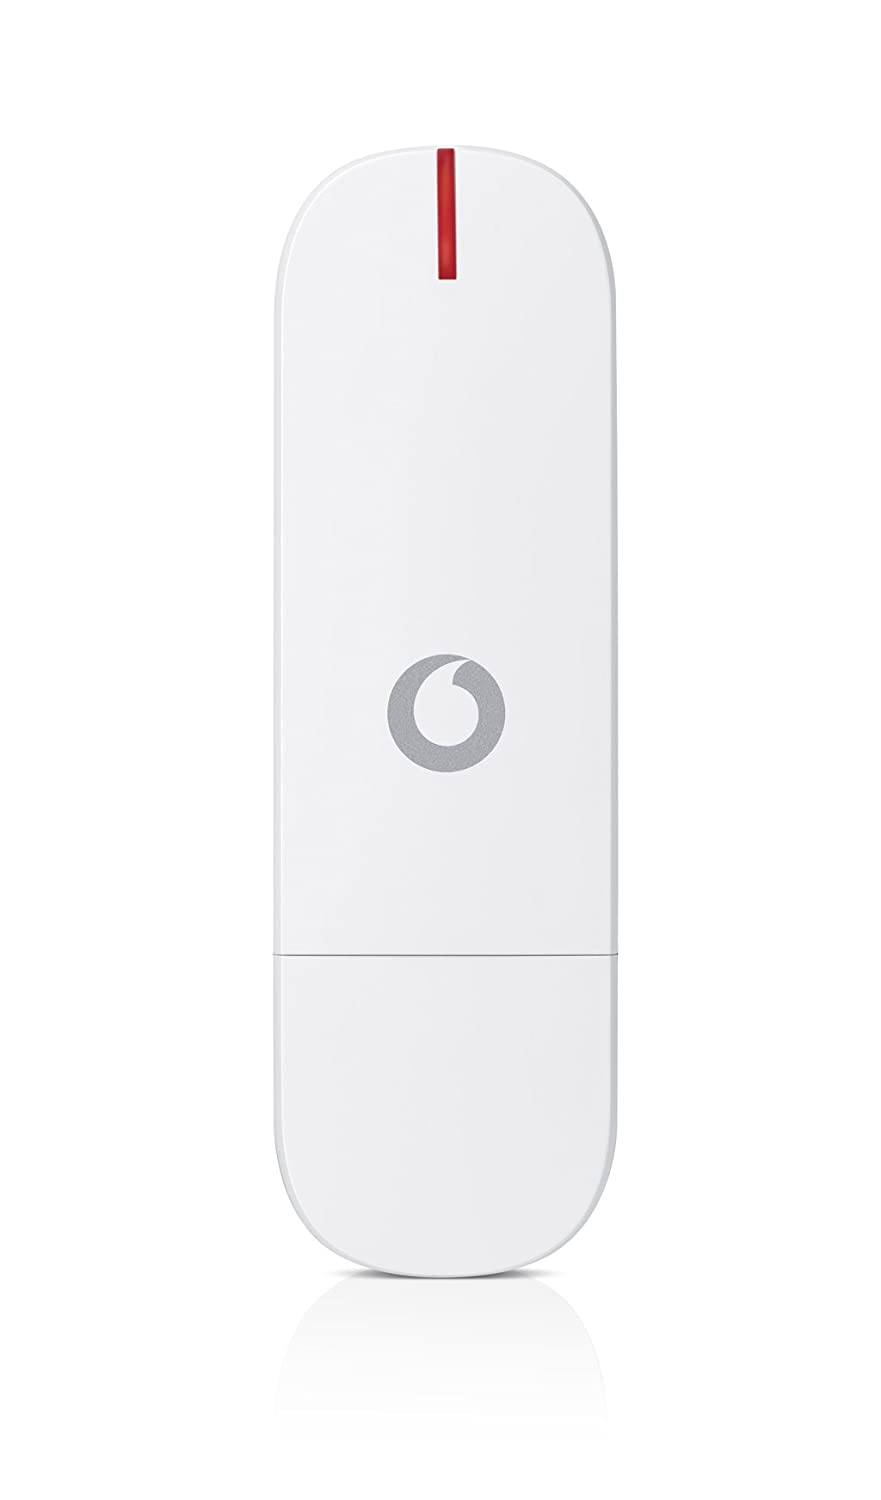 Vodafone K3772 Mobile Broadband Dongle Pay As You Go